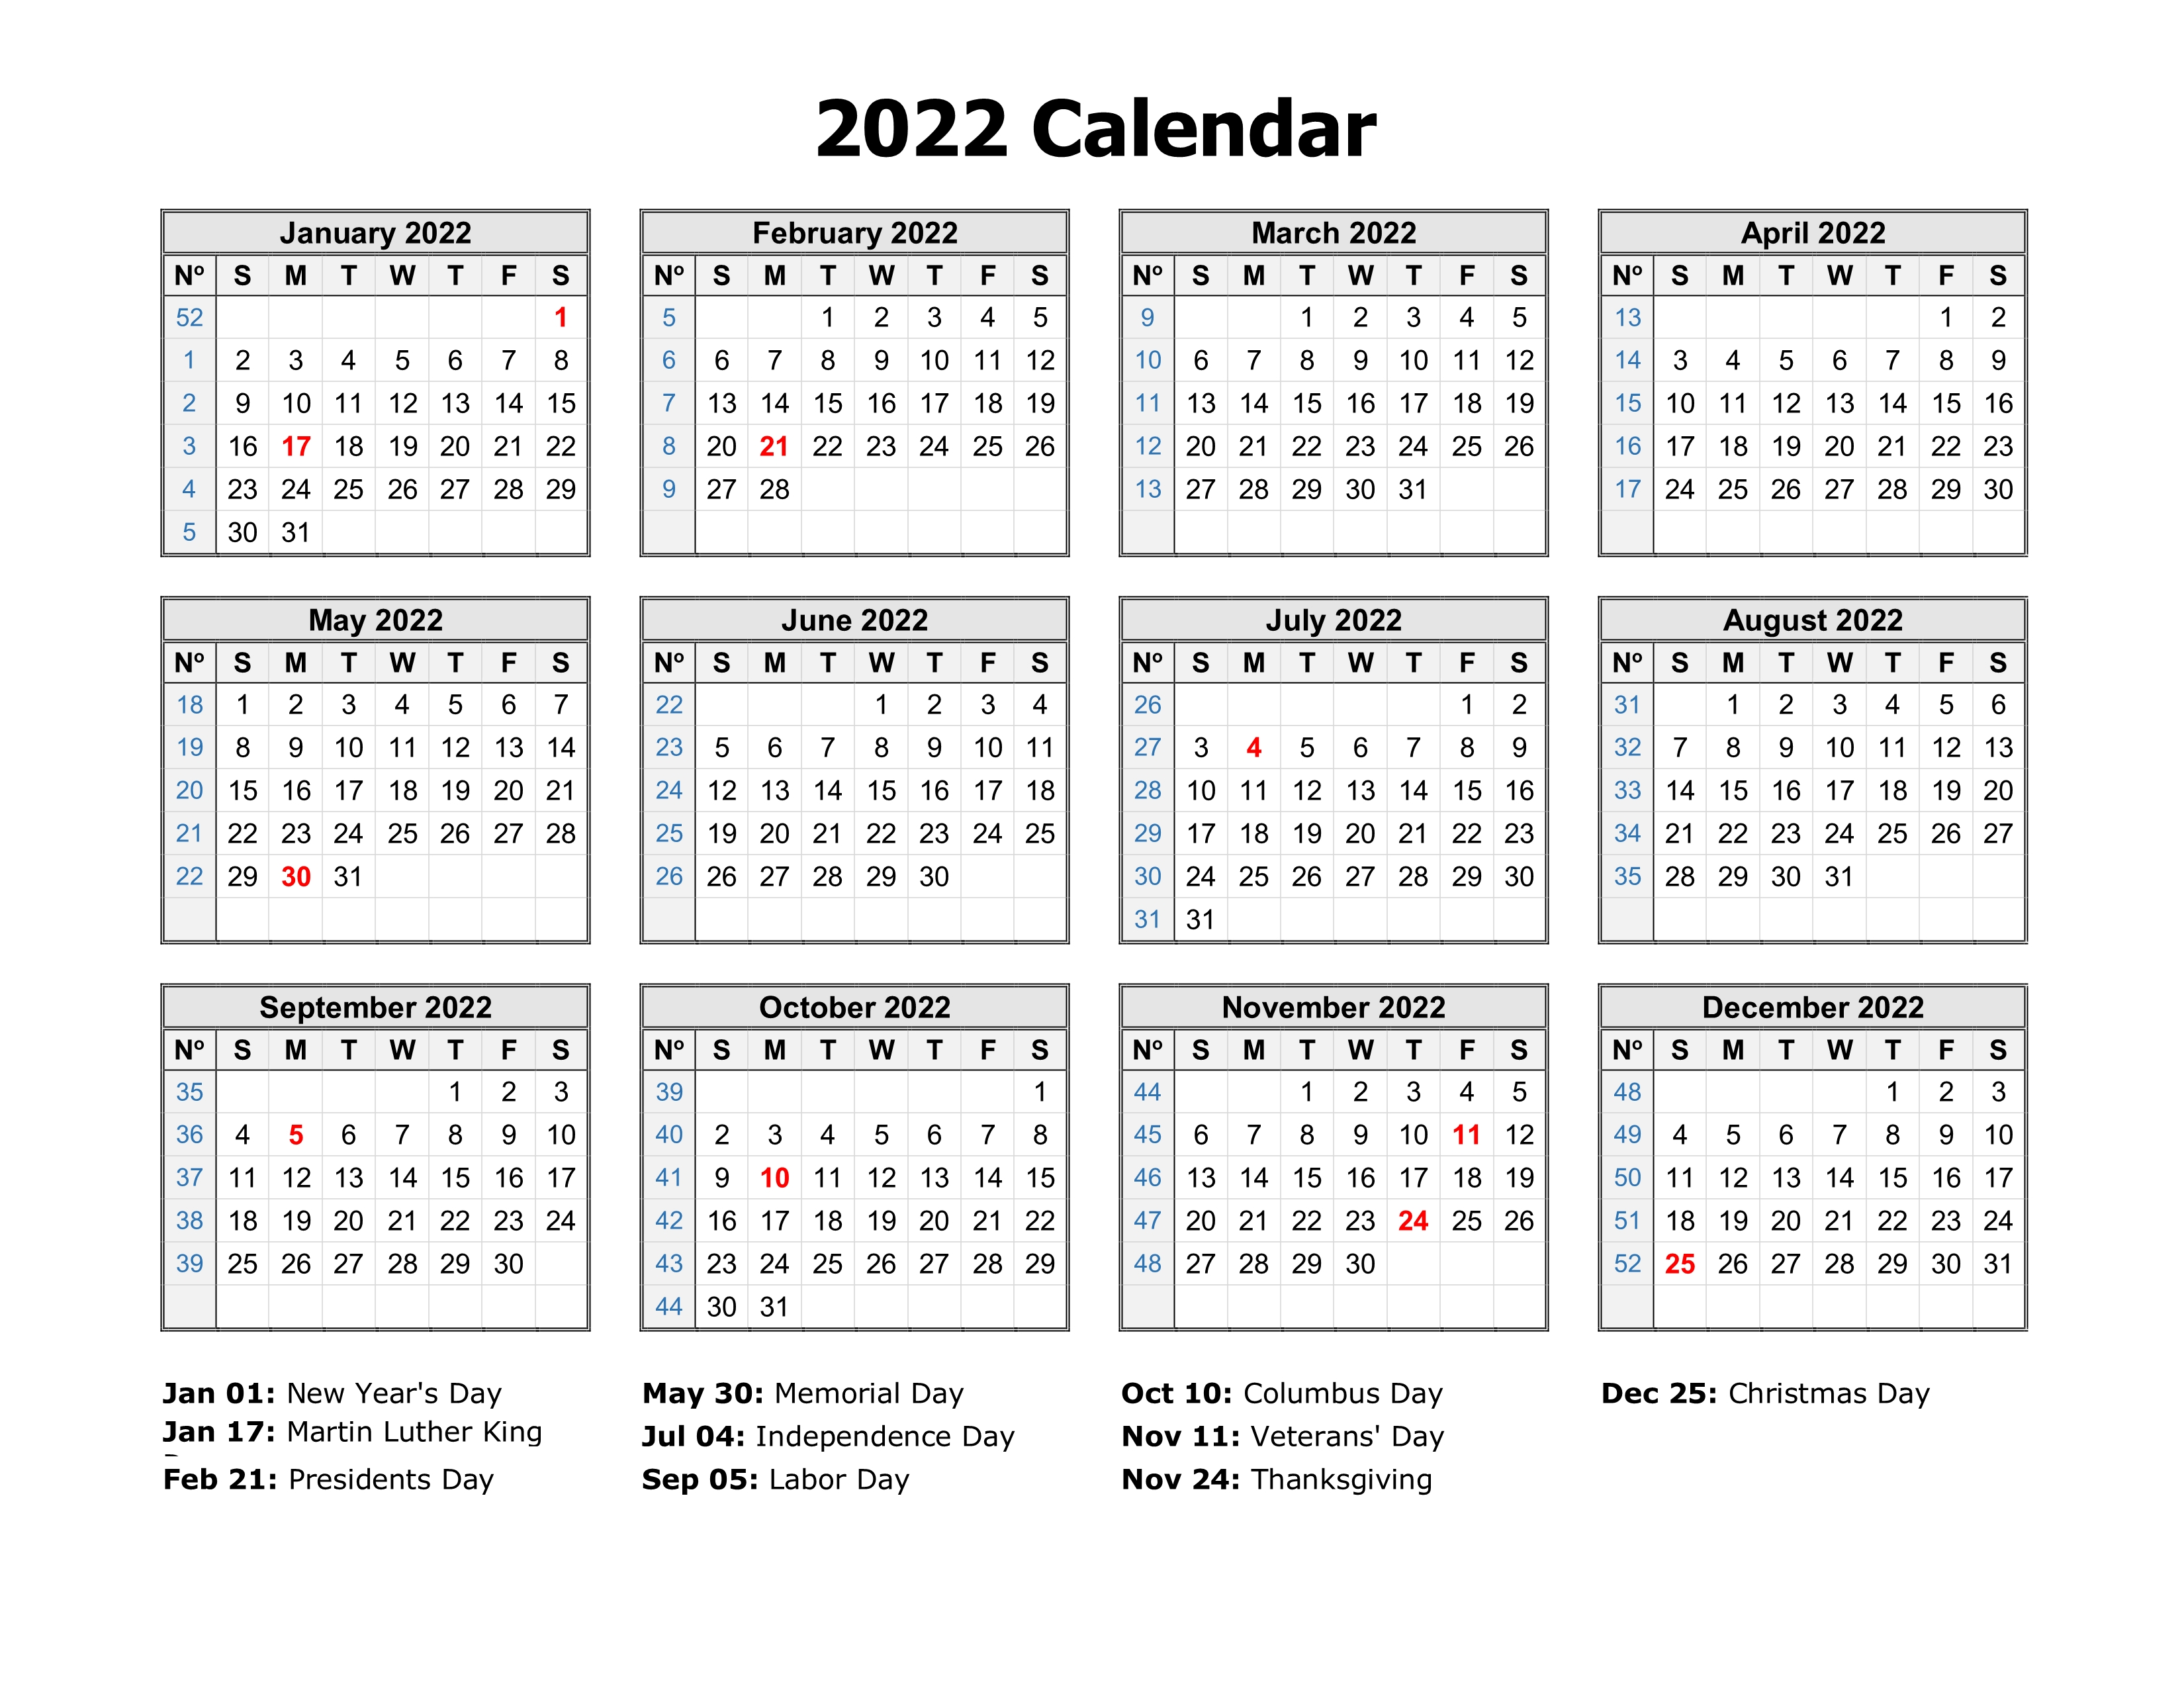 One Year Calendar 2022.Free Download Printable Calendar 2022 In One Page Clean Design